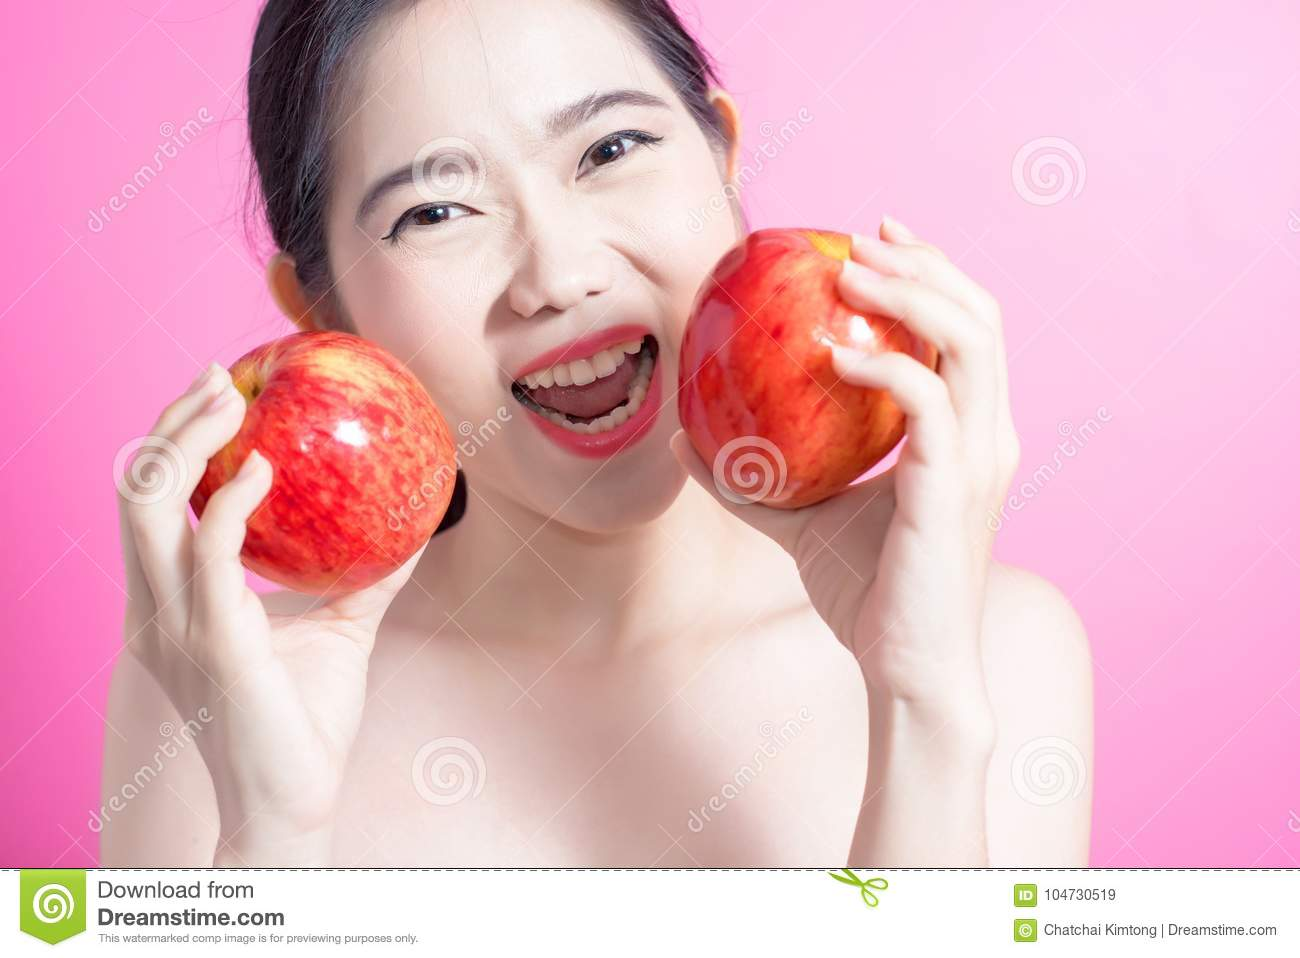 Asian woman with apple concept. She smiling and holding apple. Beauty face and natural makeup. Isolated over pink background.